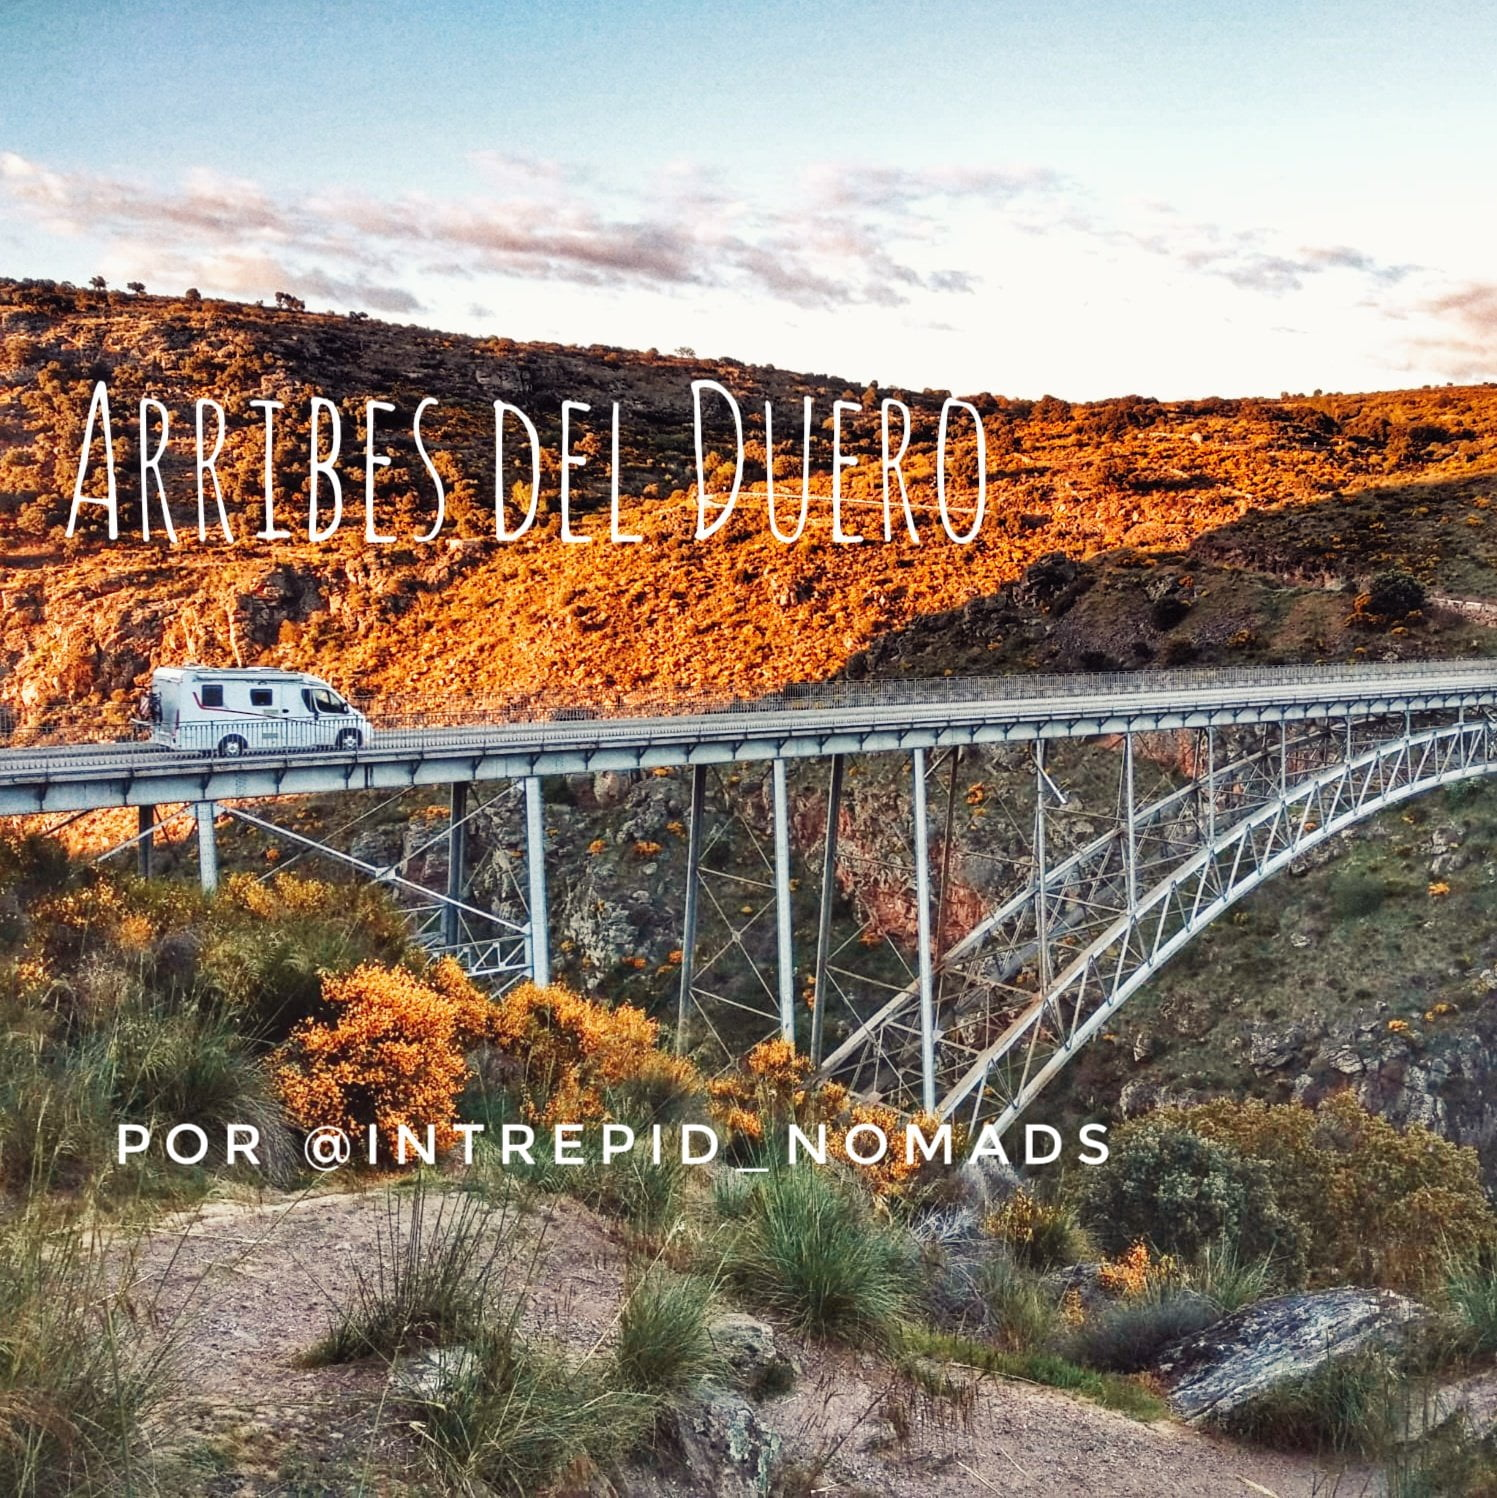 Getaway through Arribes del Duero di @intrepid_nomads